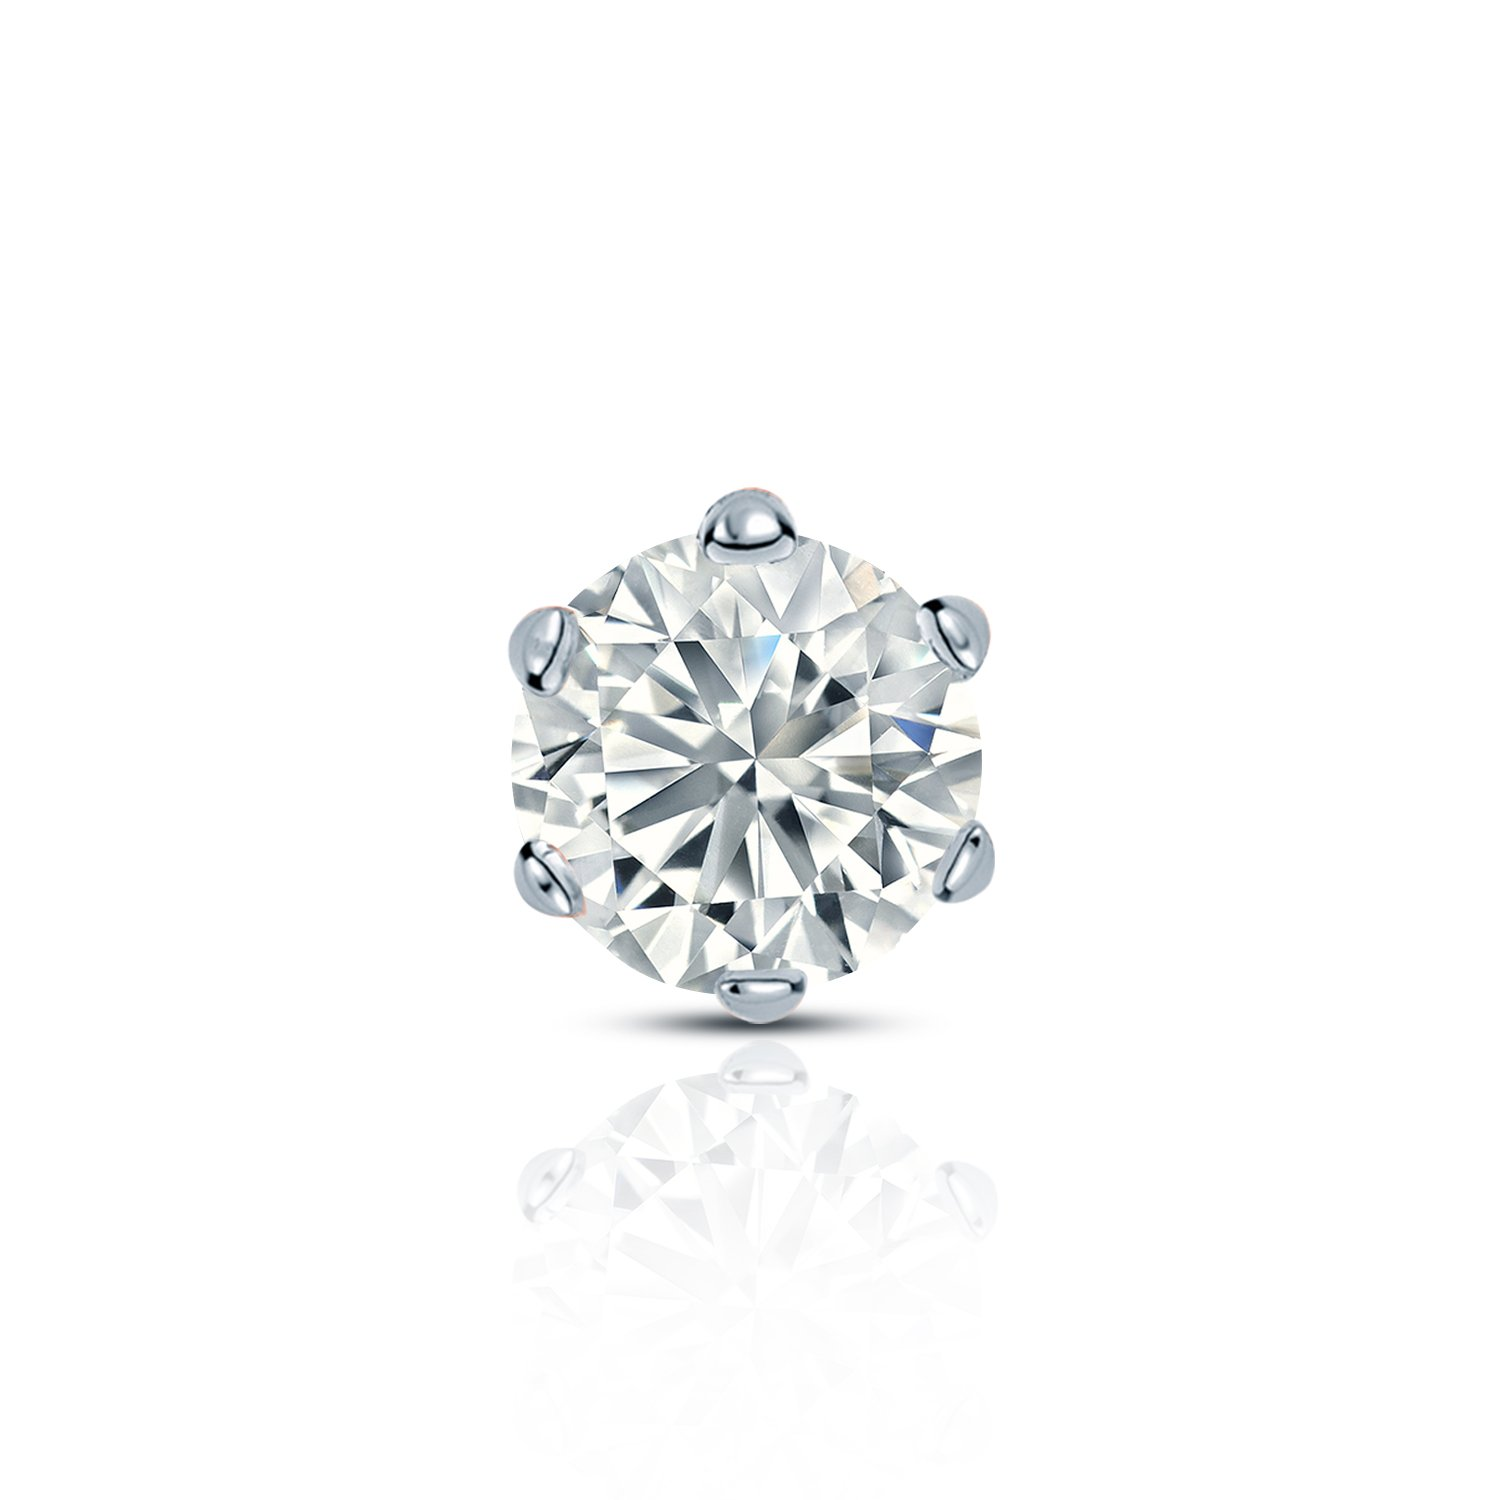 14k White Gold Round Diamond Simulant CZ SINGLE STUD Earring 6-Prong 1//8-1cttw,Excellent Quality